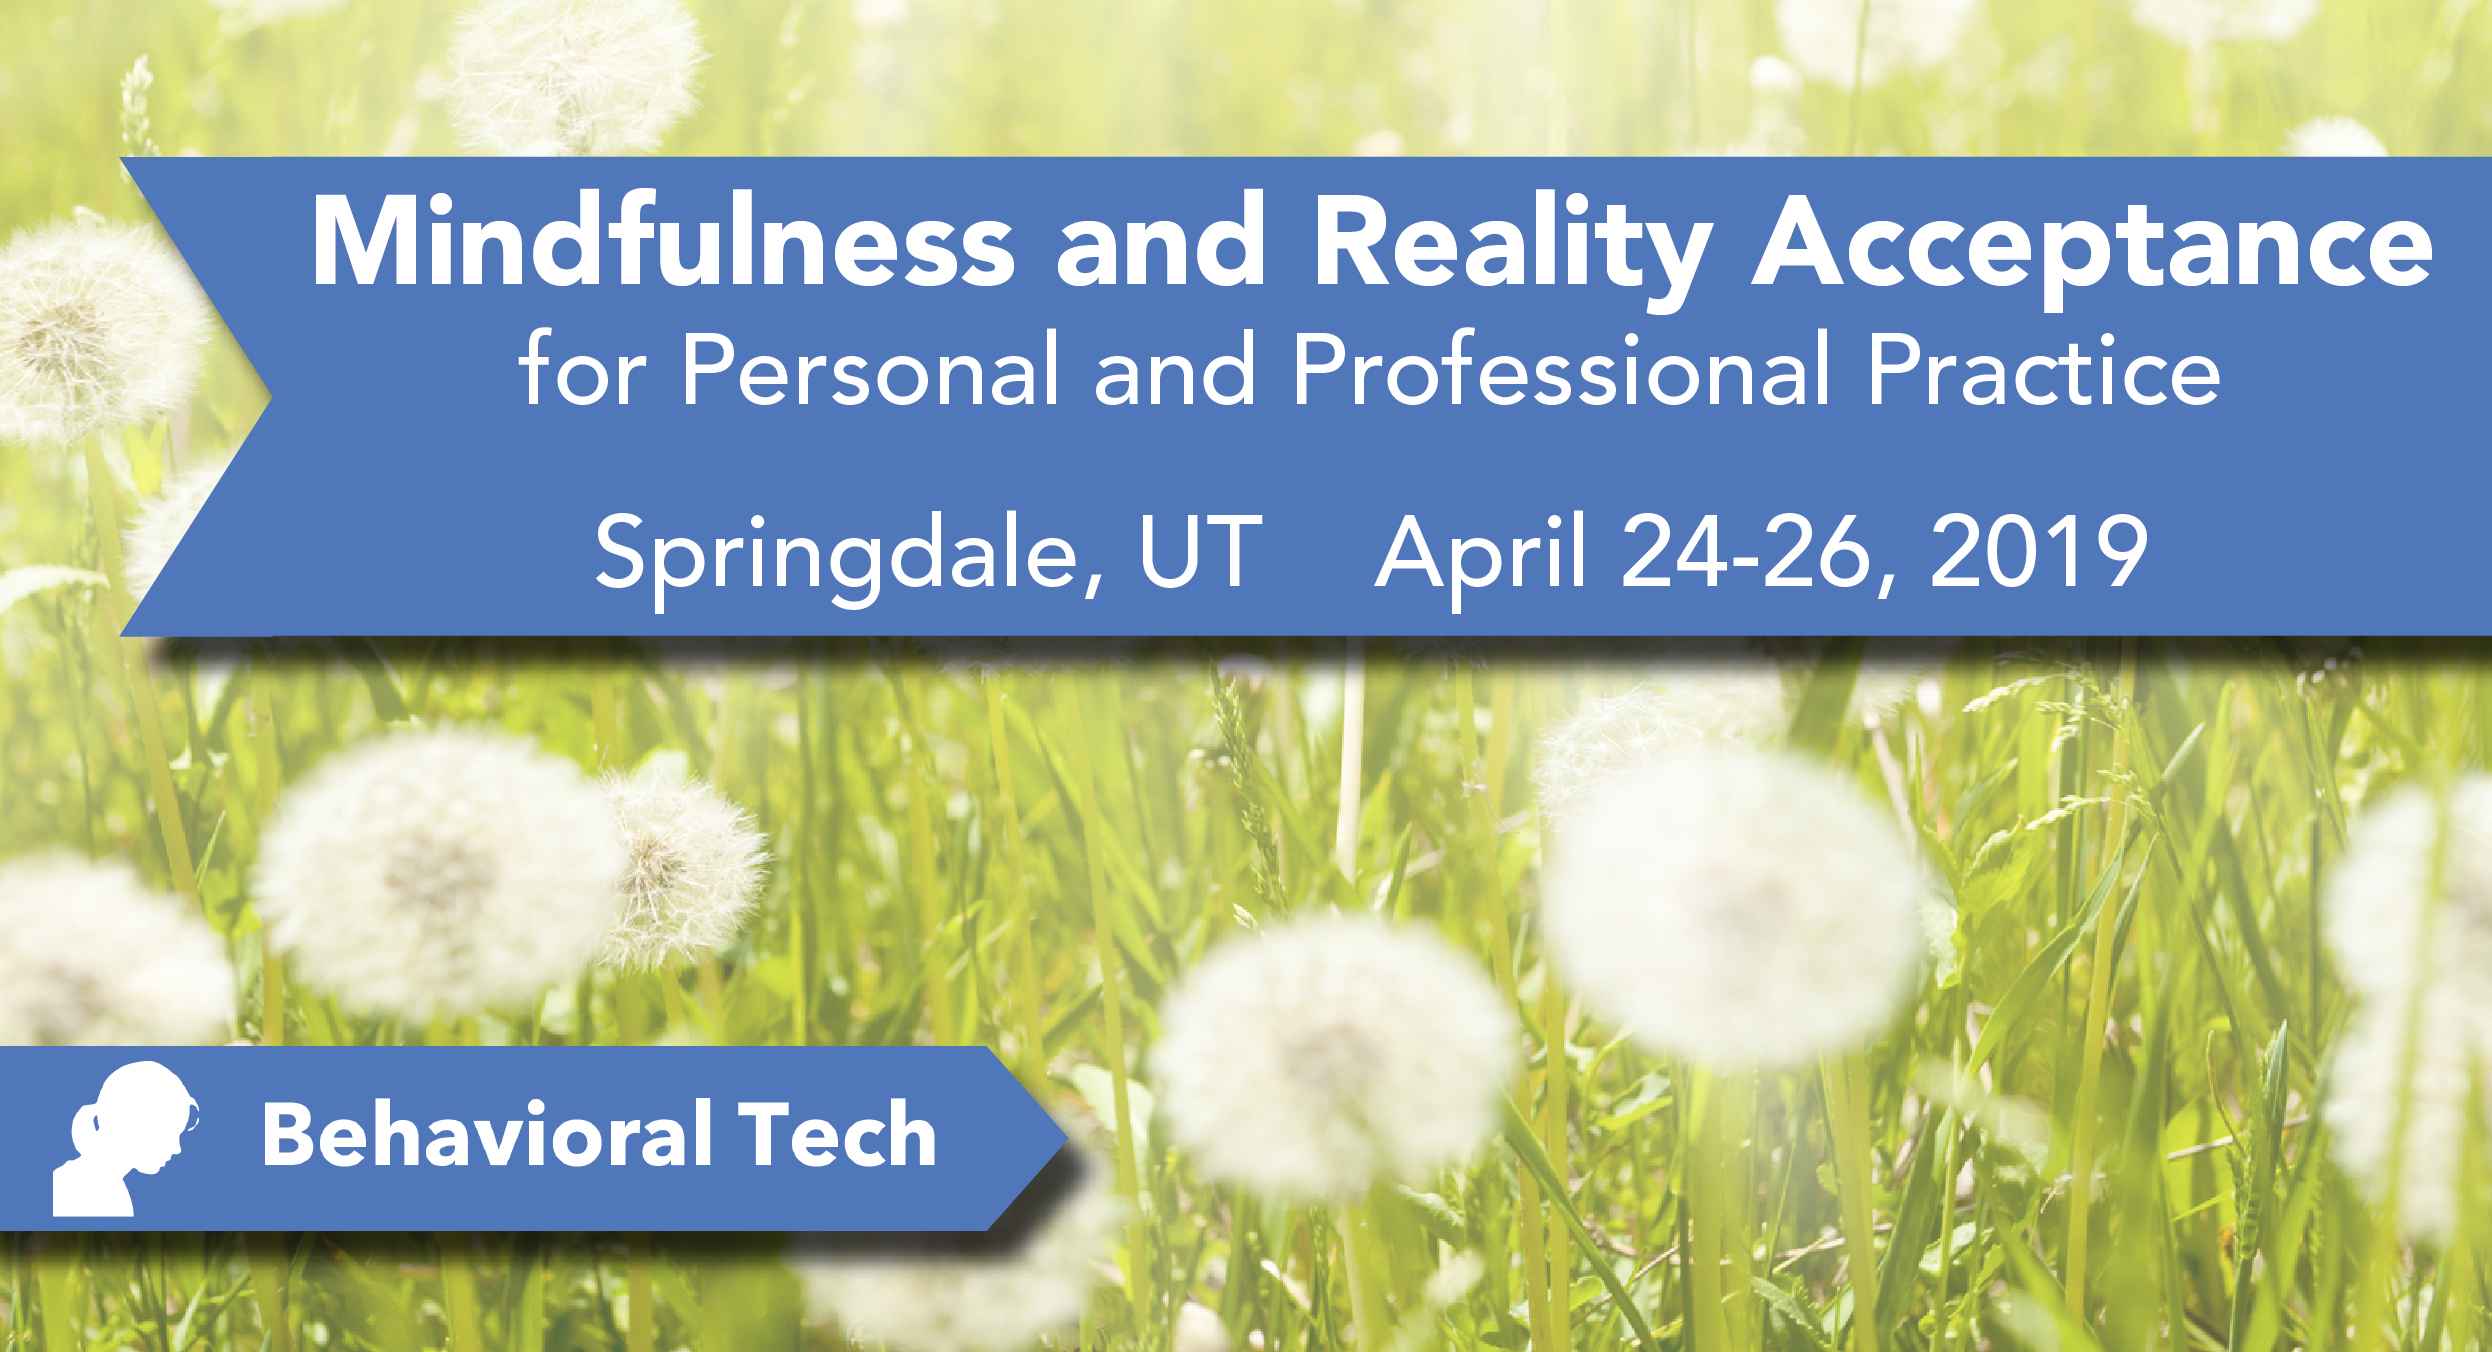 Mindfulness and Reality Acceptance for Personal and